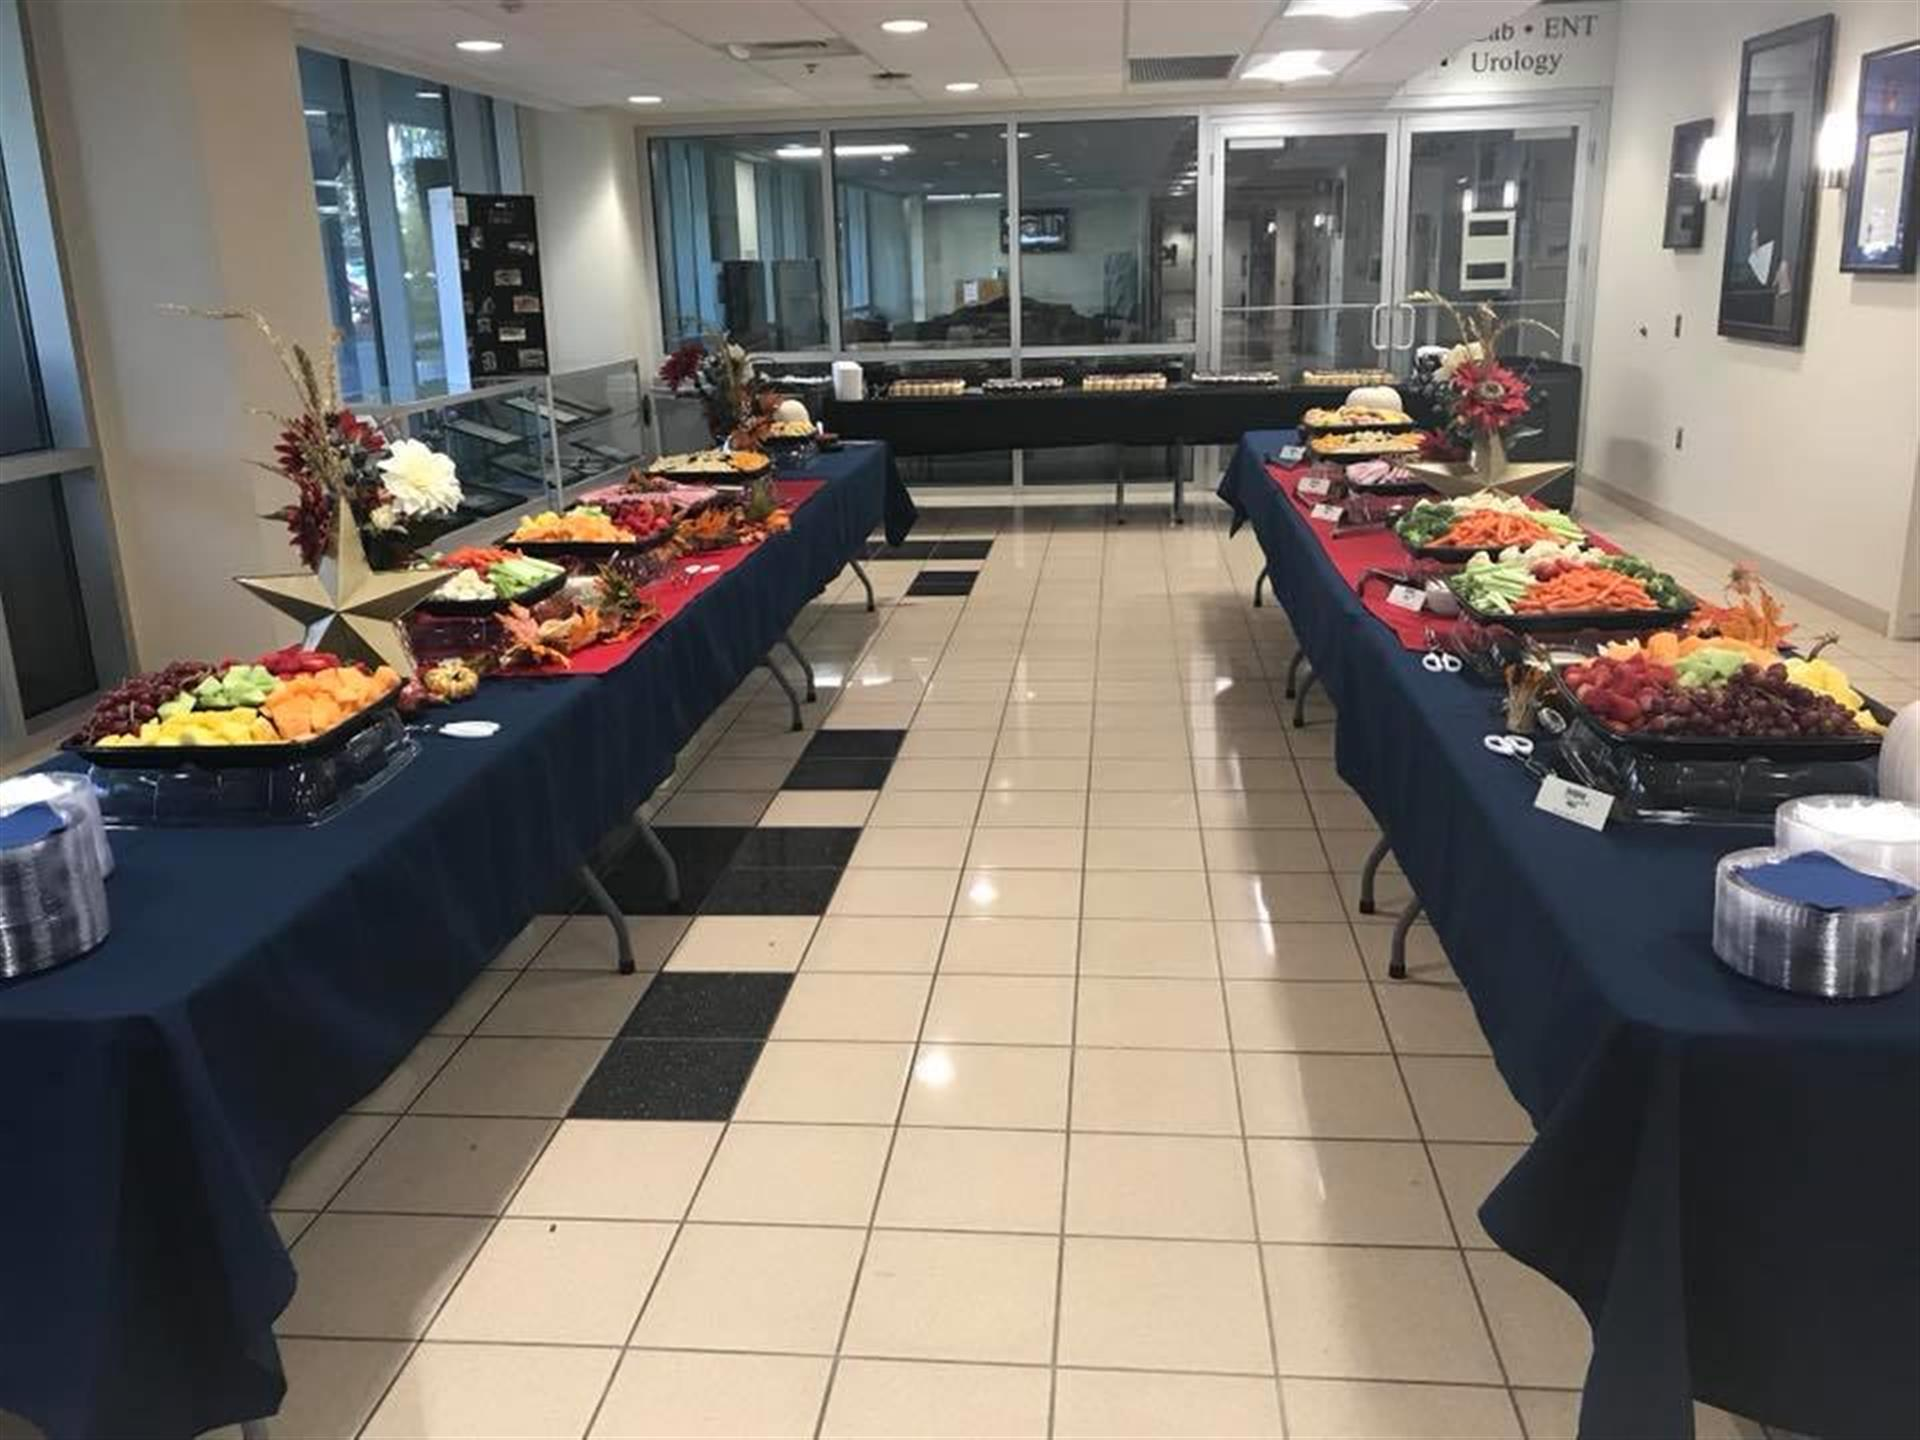 buffet tables setup for a catering event with platters of food